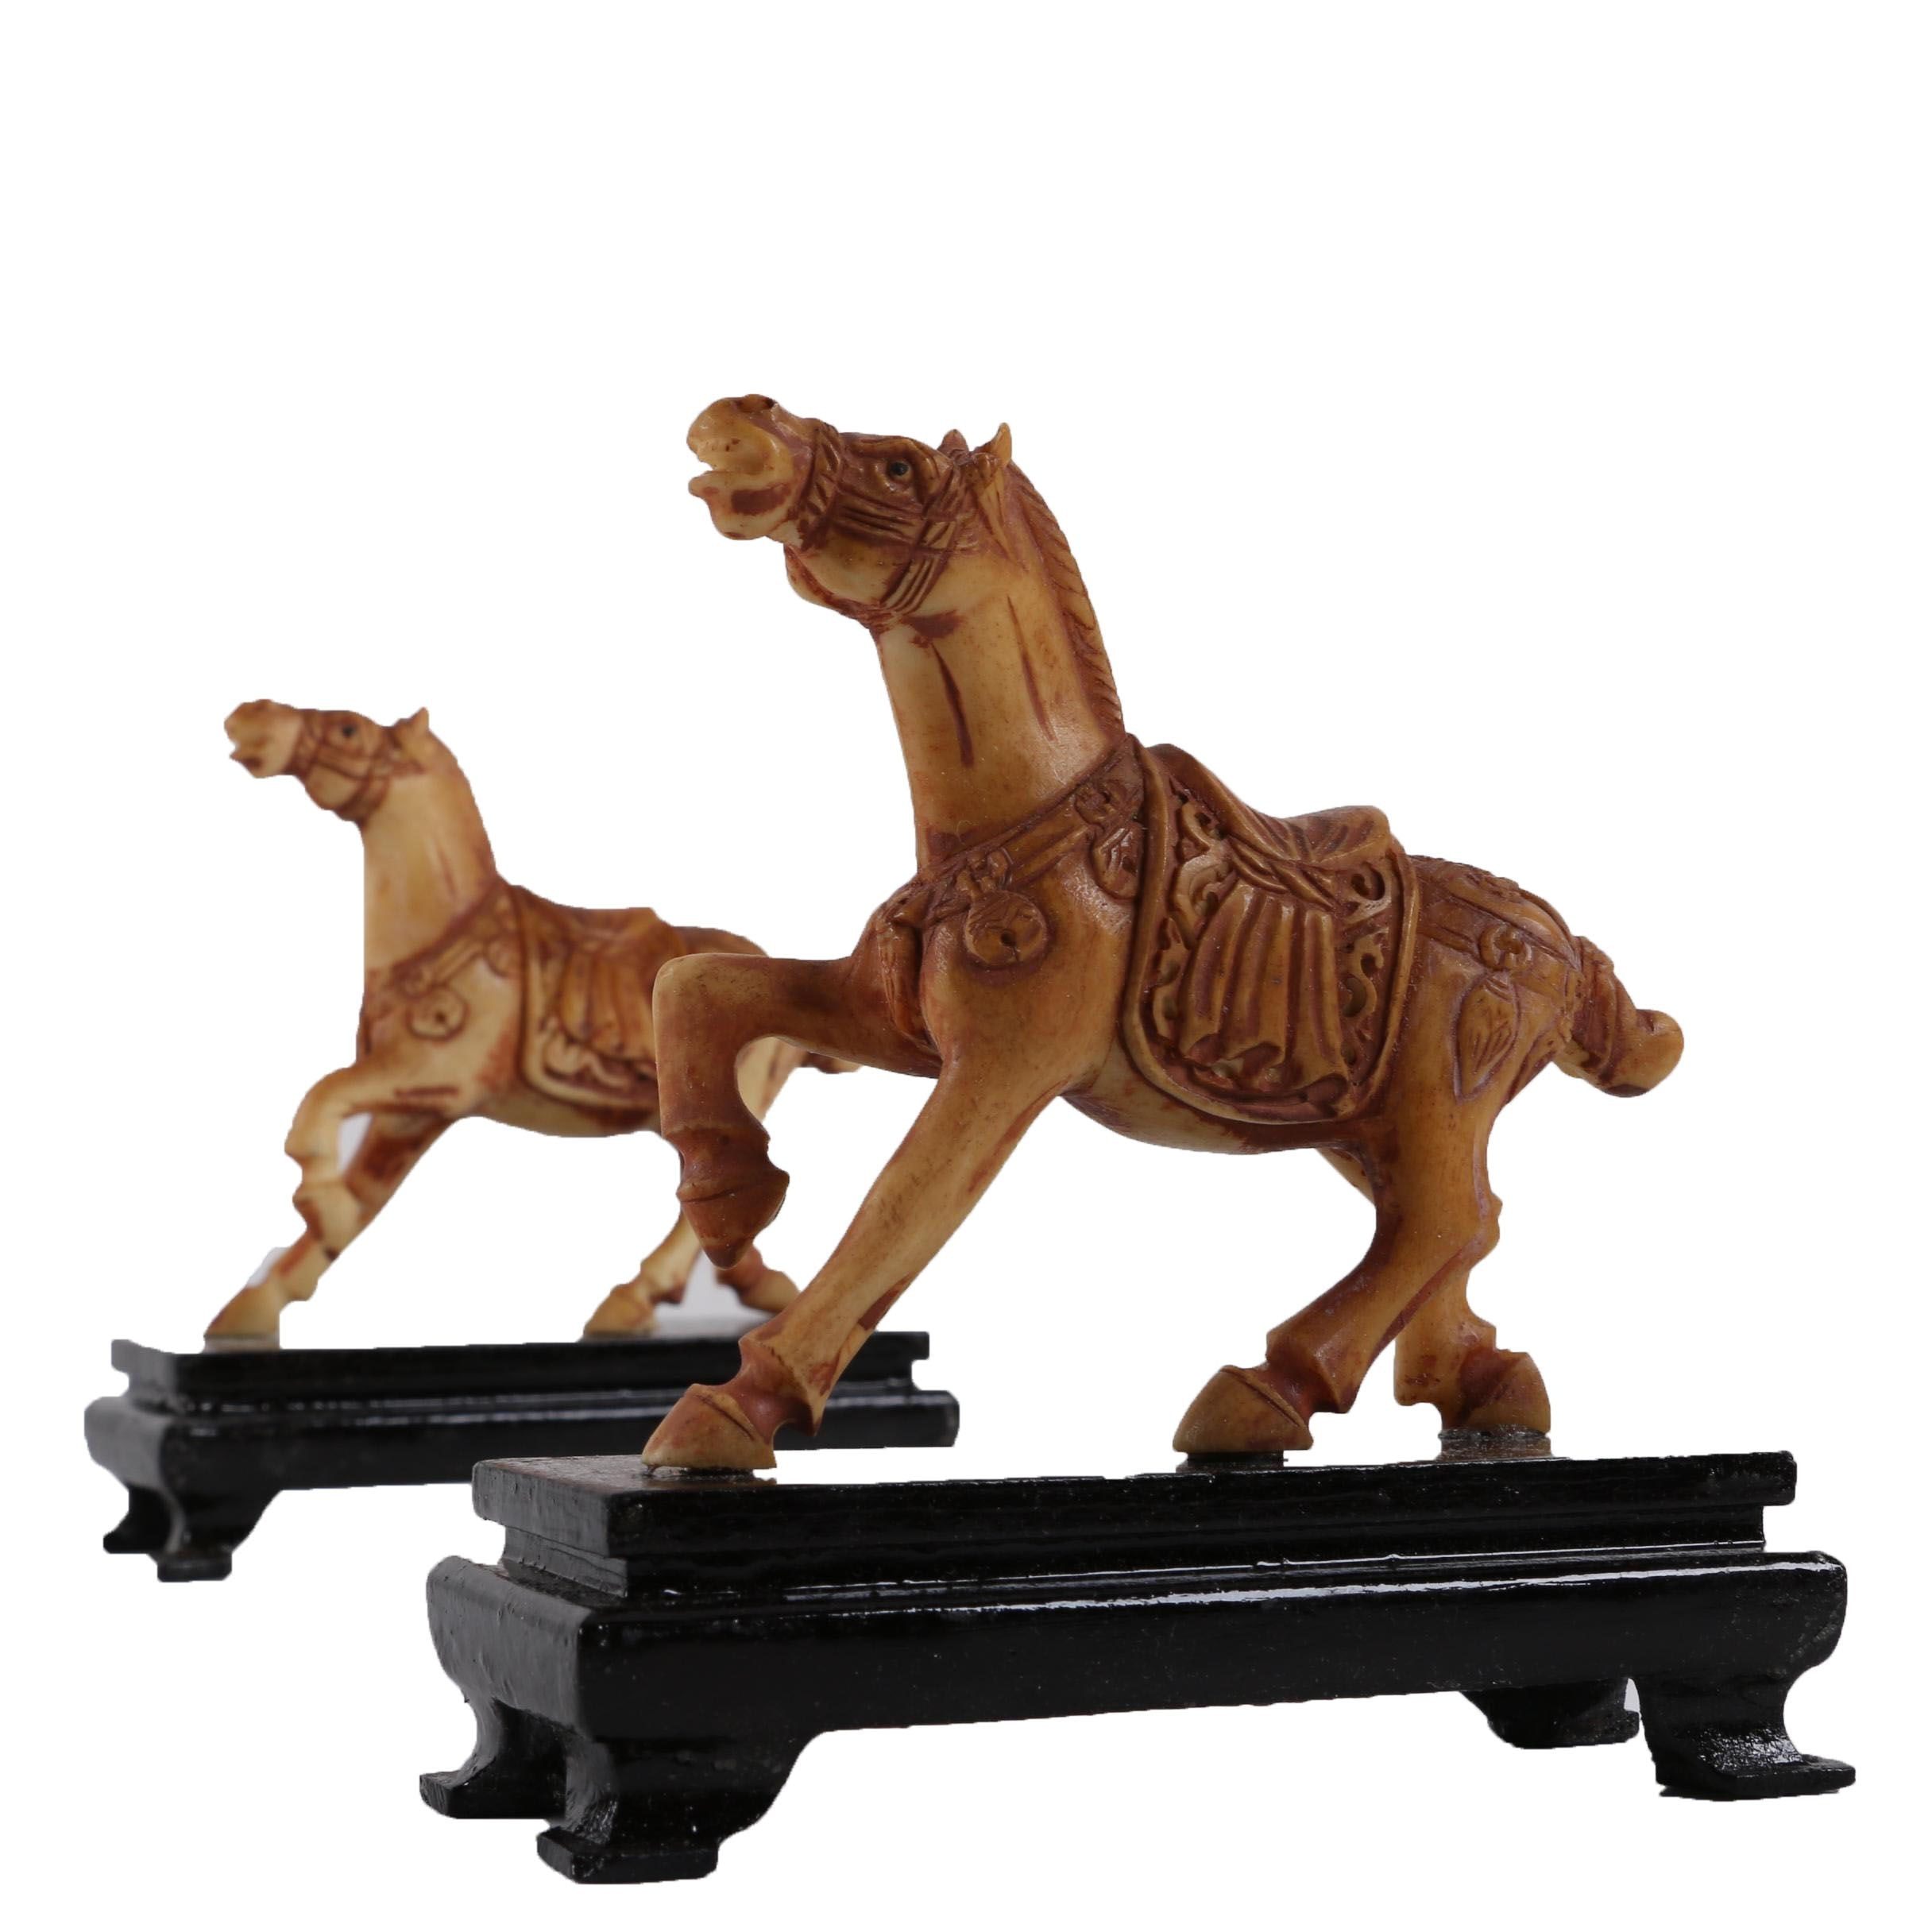 Resin Horse Figurines on Pedestal Bases